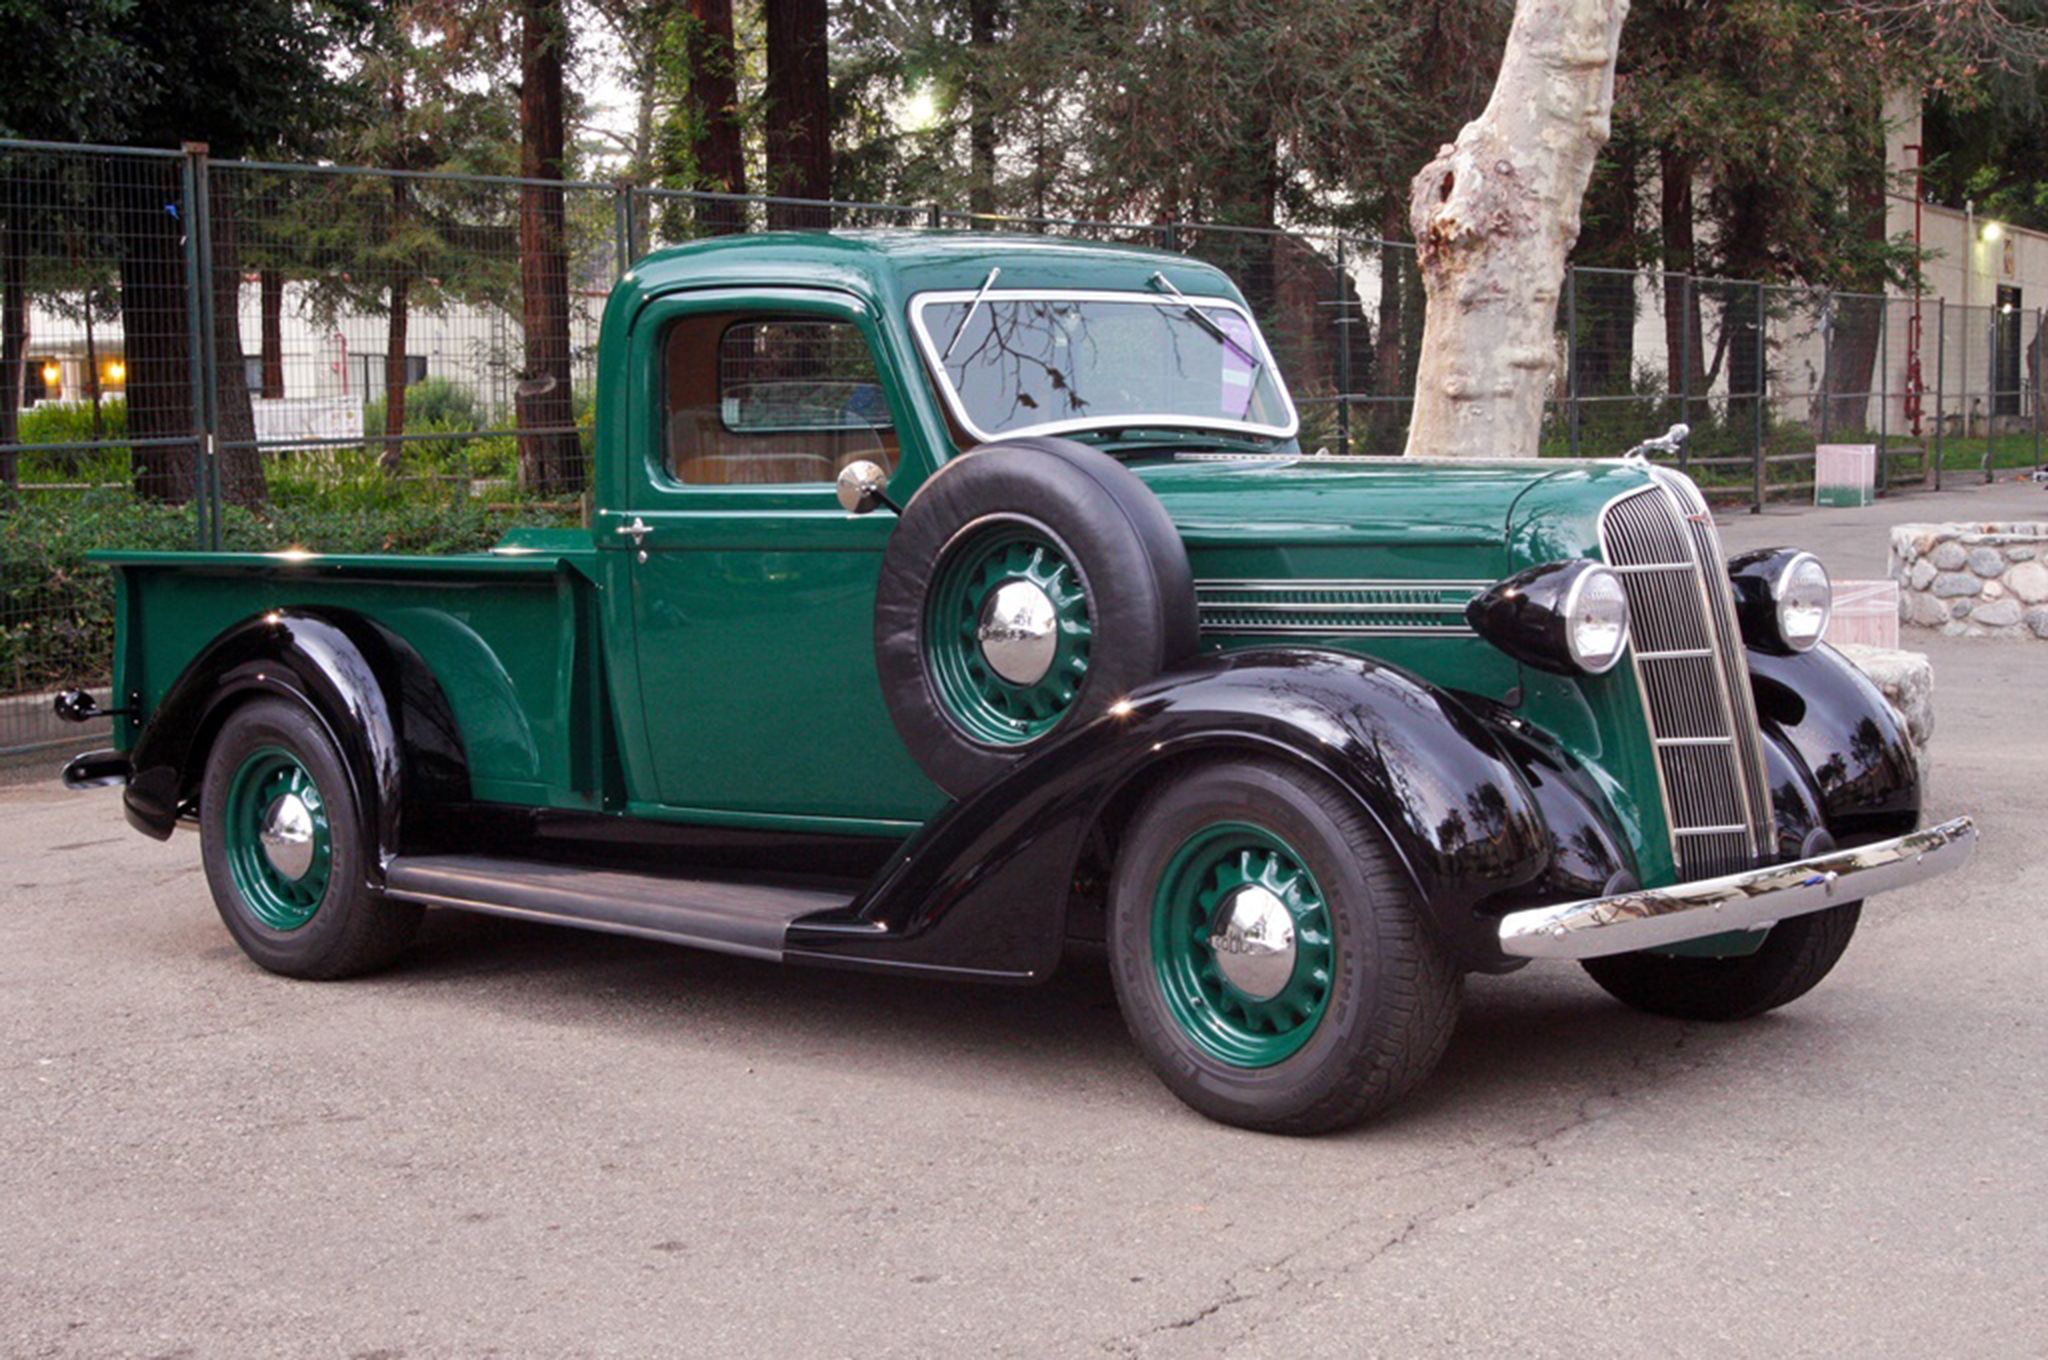 Mopar-Powered 1936 Dodge Pickup - Hot Rod Network | Classic Pickup ...